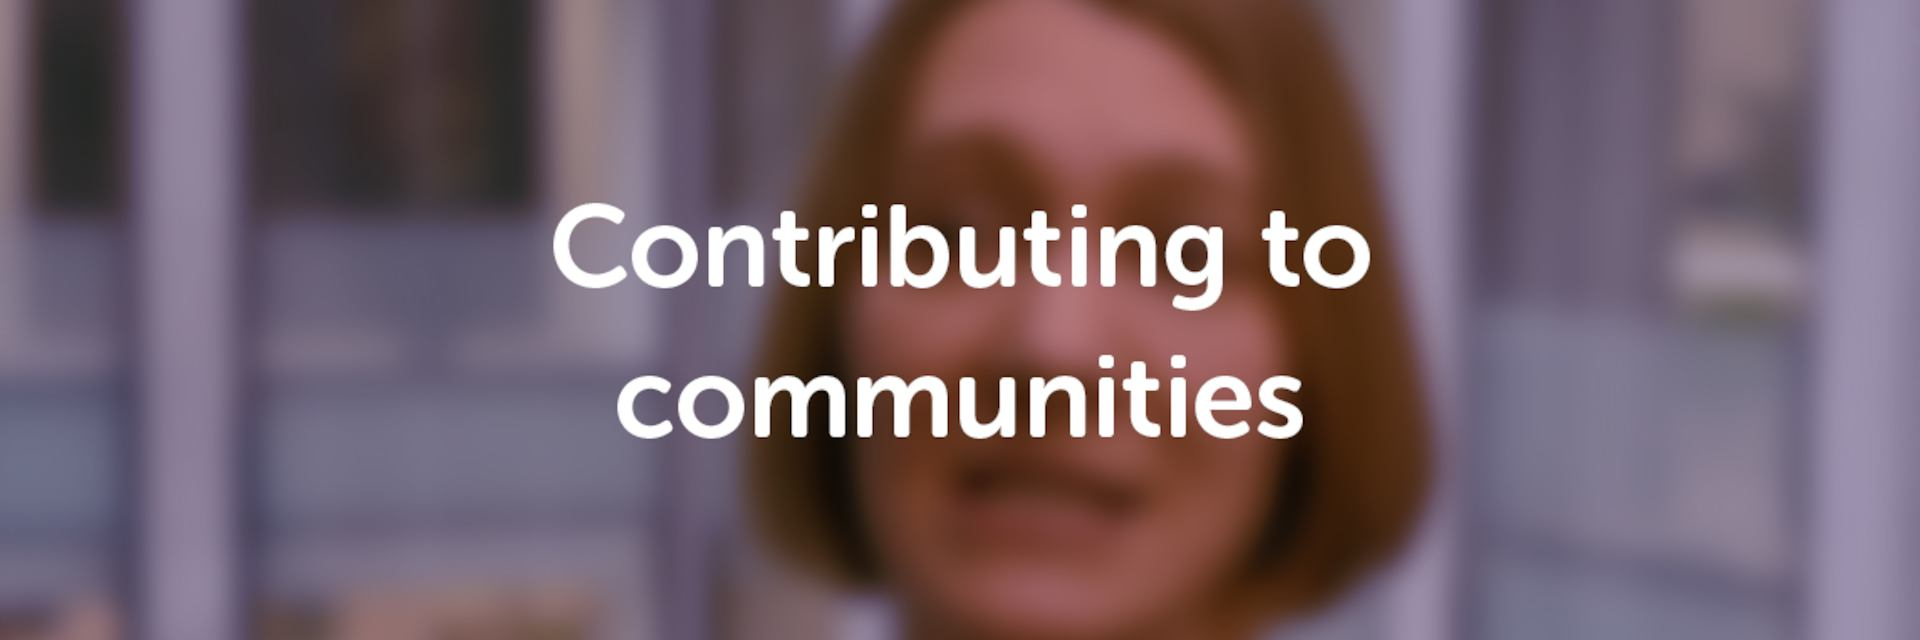 Contributing to communities introduction video